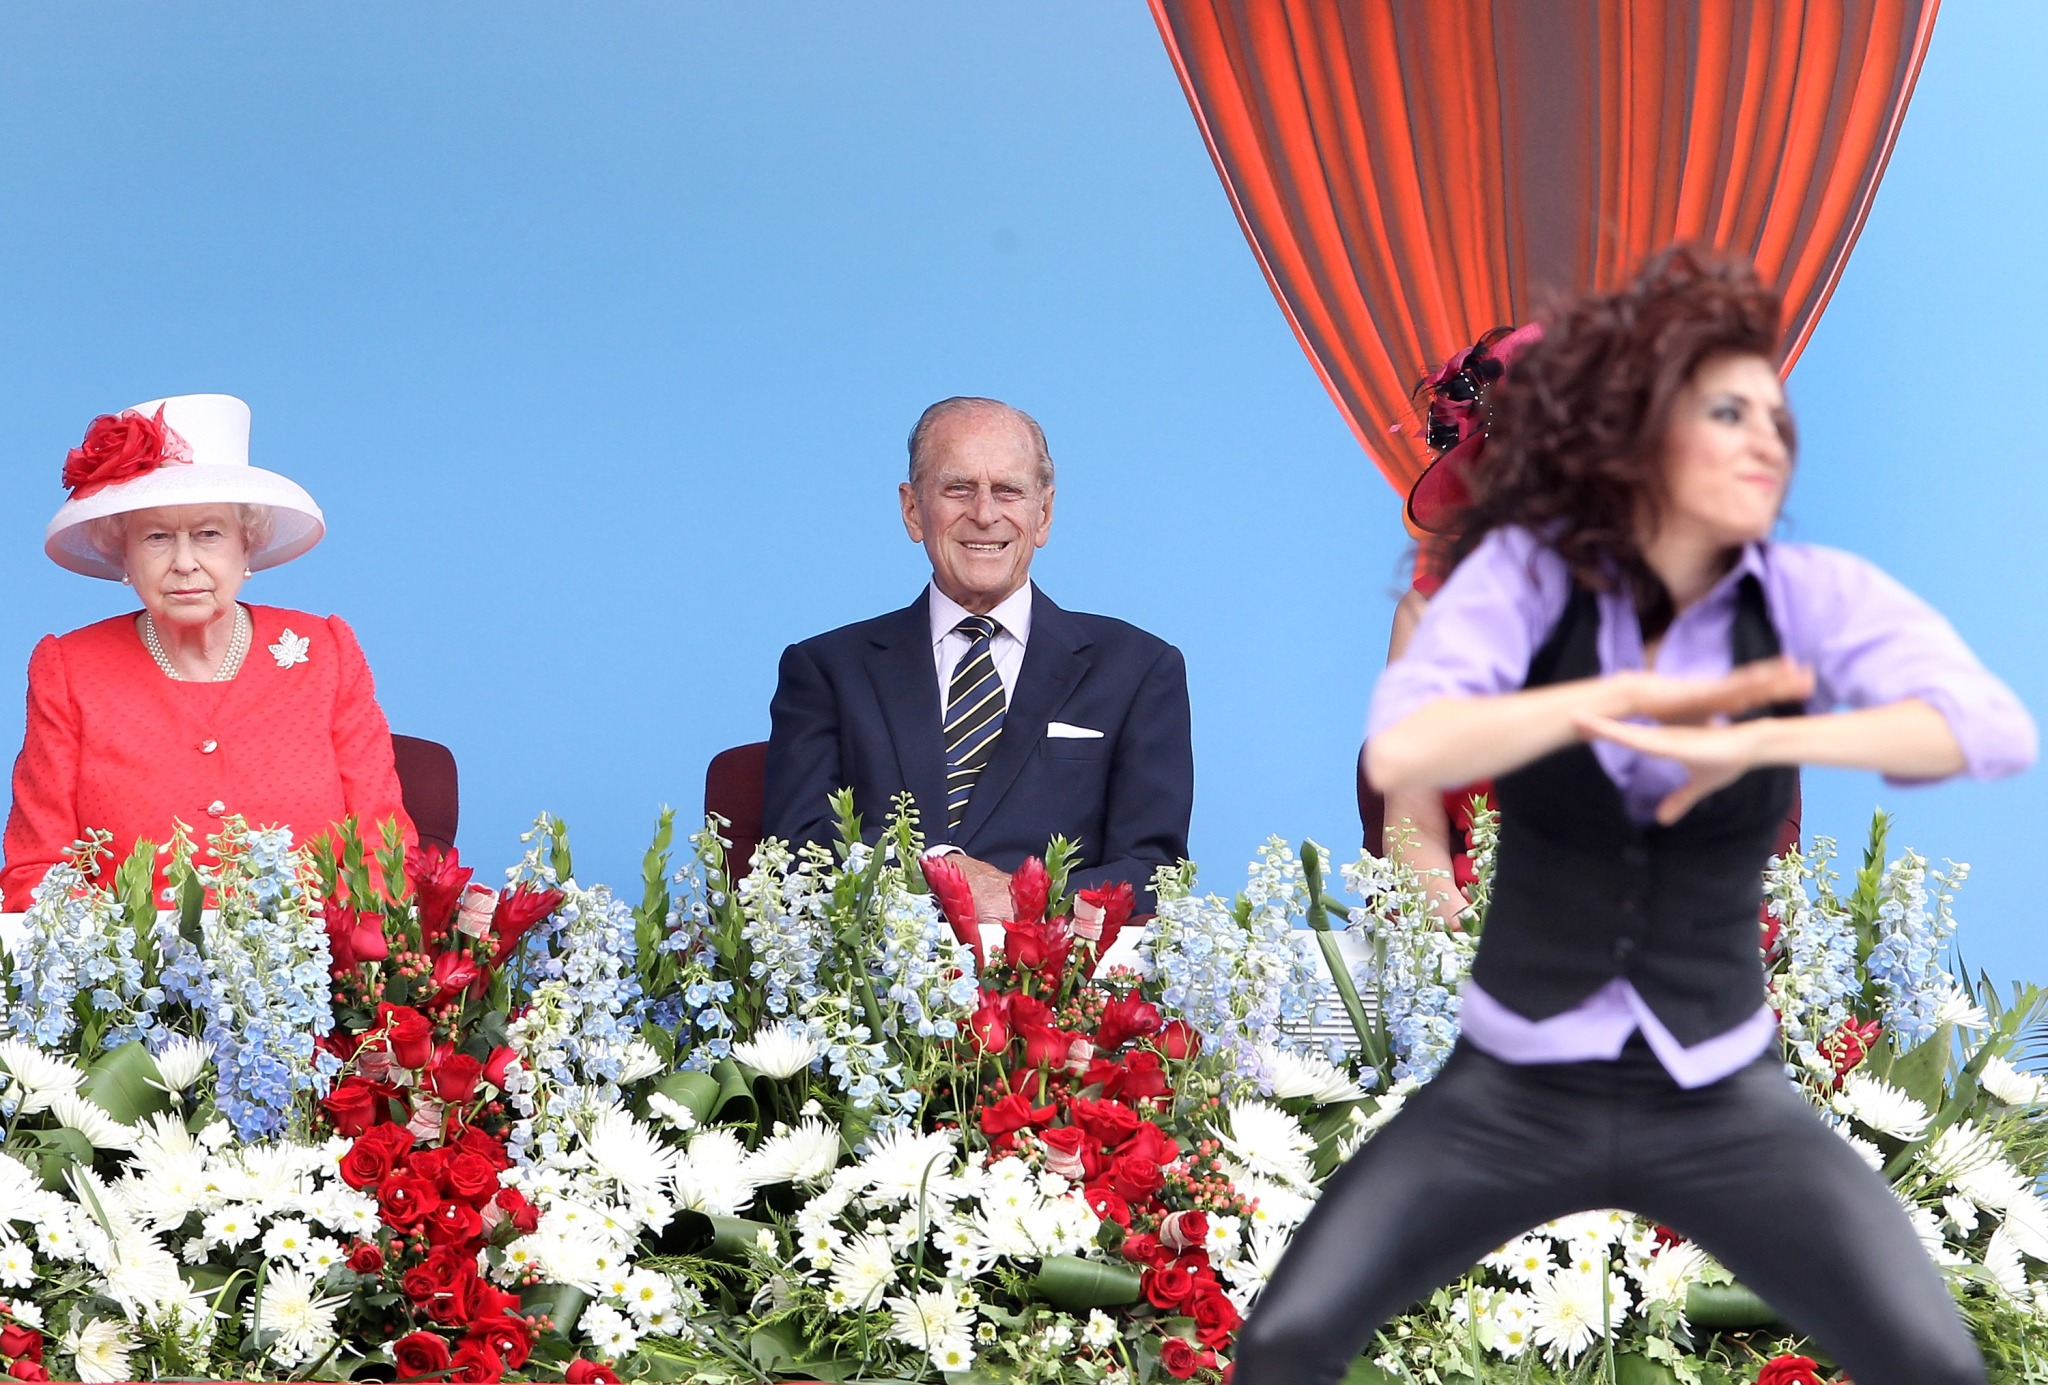 Queen Elizabeth II and Prince Philip, Duke of Edinburgh watch a dancer perform during Canada Day celebrations on Parliament Hill on July 1, 2010 in Ottawa, Canada.